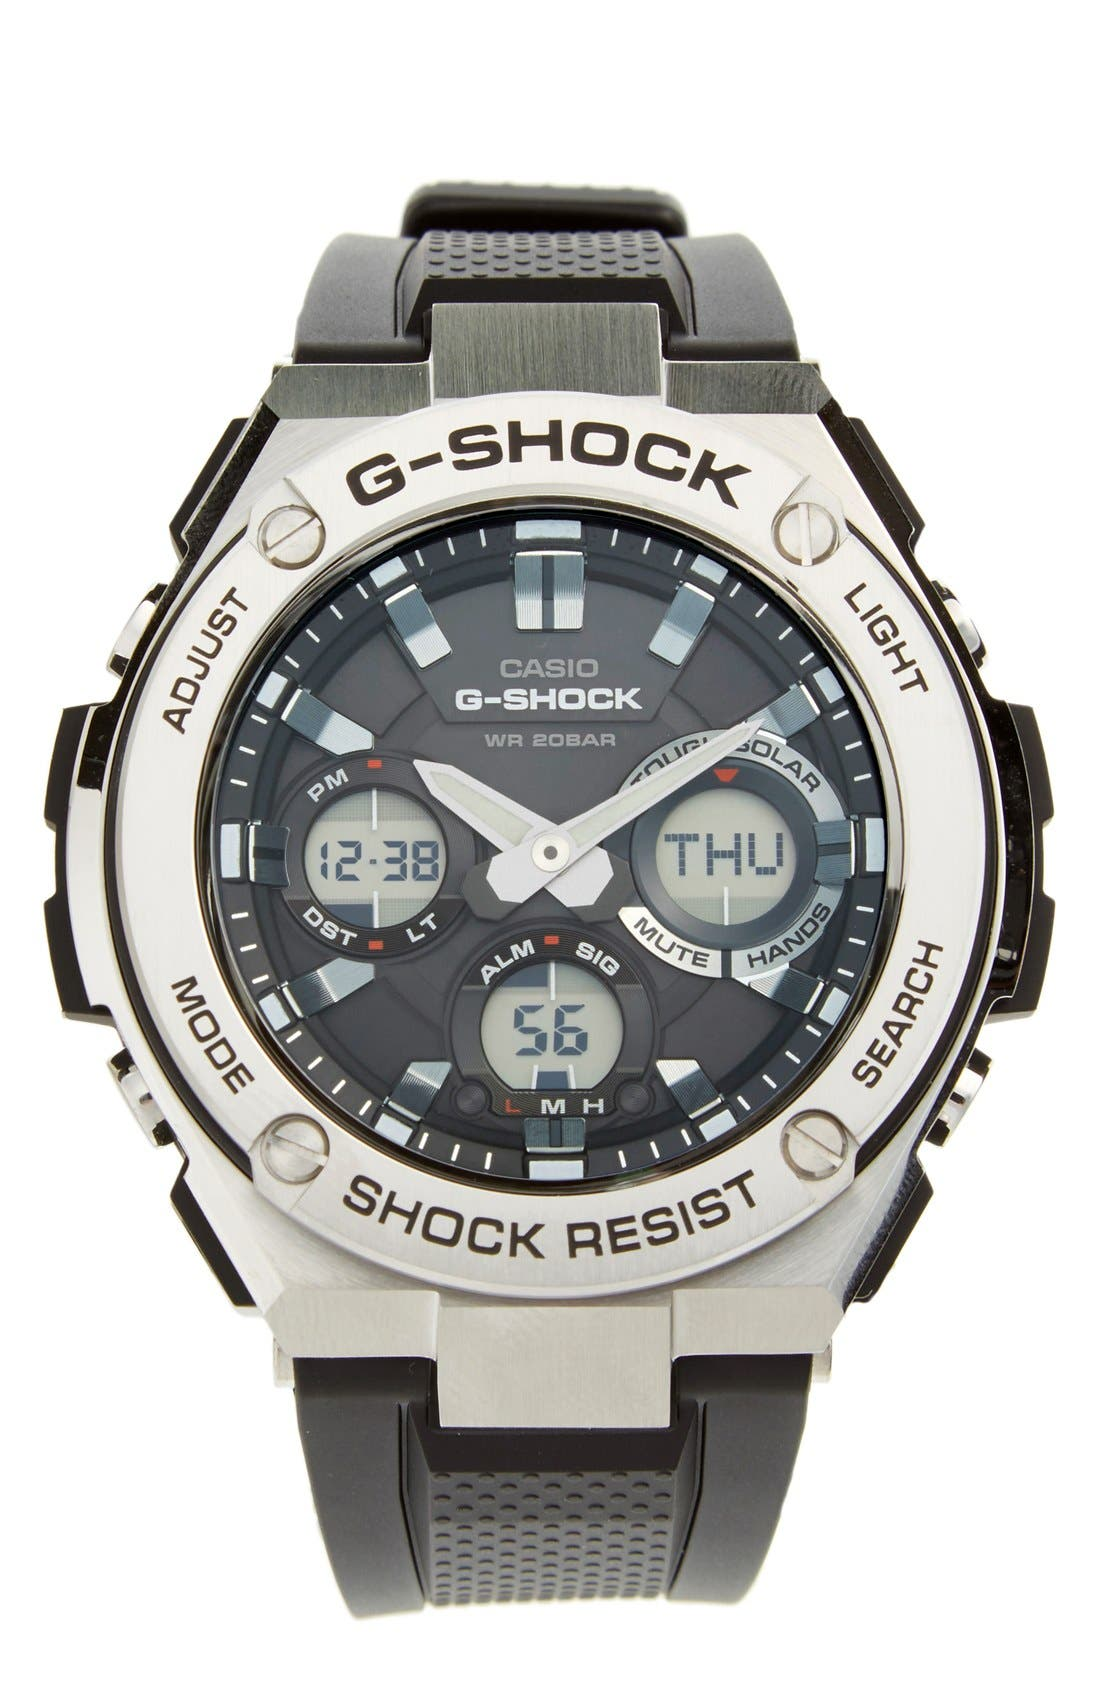 G-SHOCK BABY-G G-Shock 'G-Steel' Ana-Digi Resin Strap Watch,